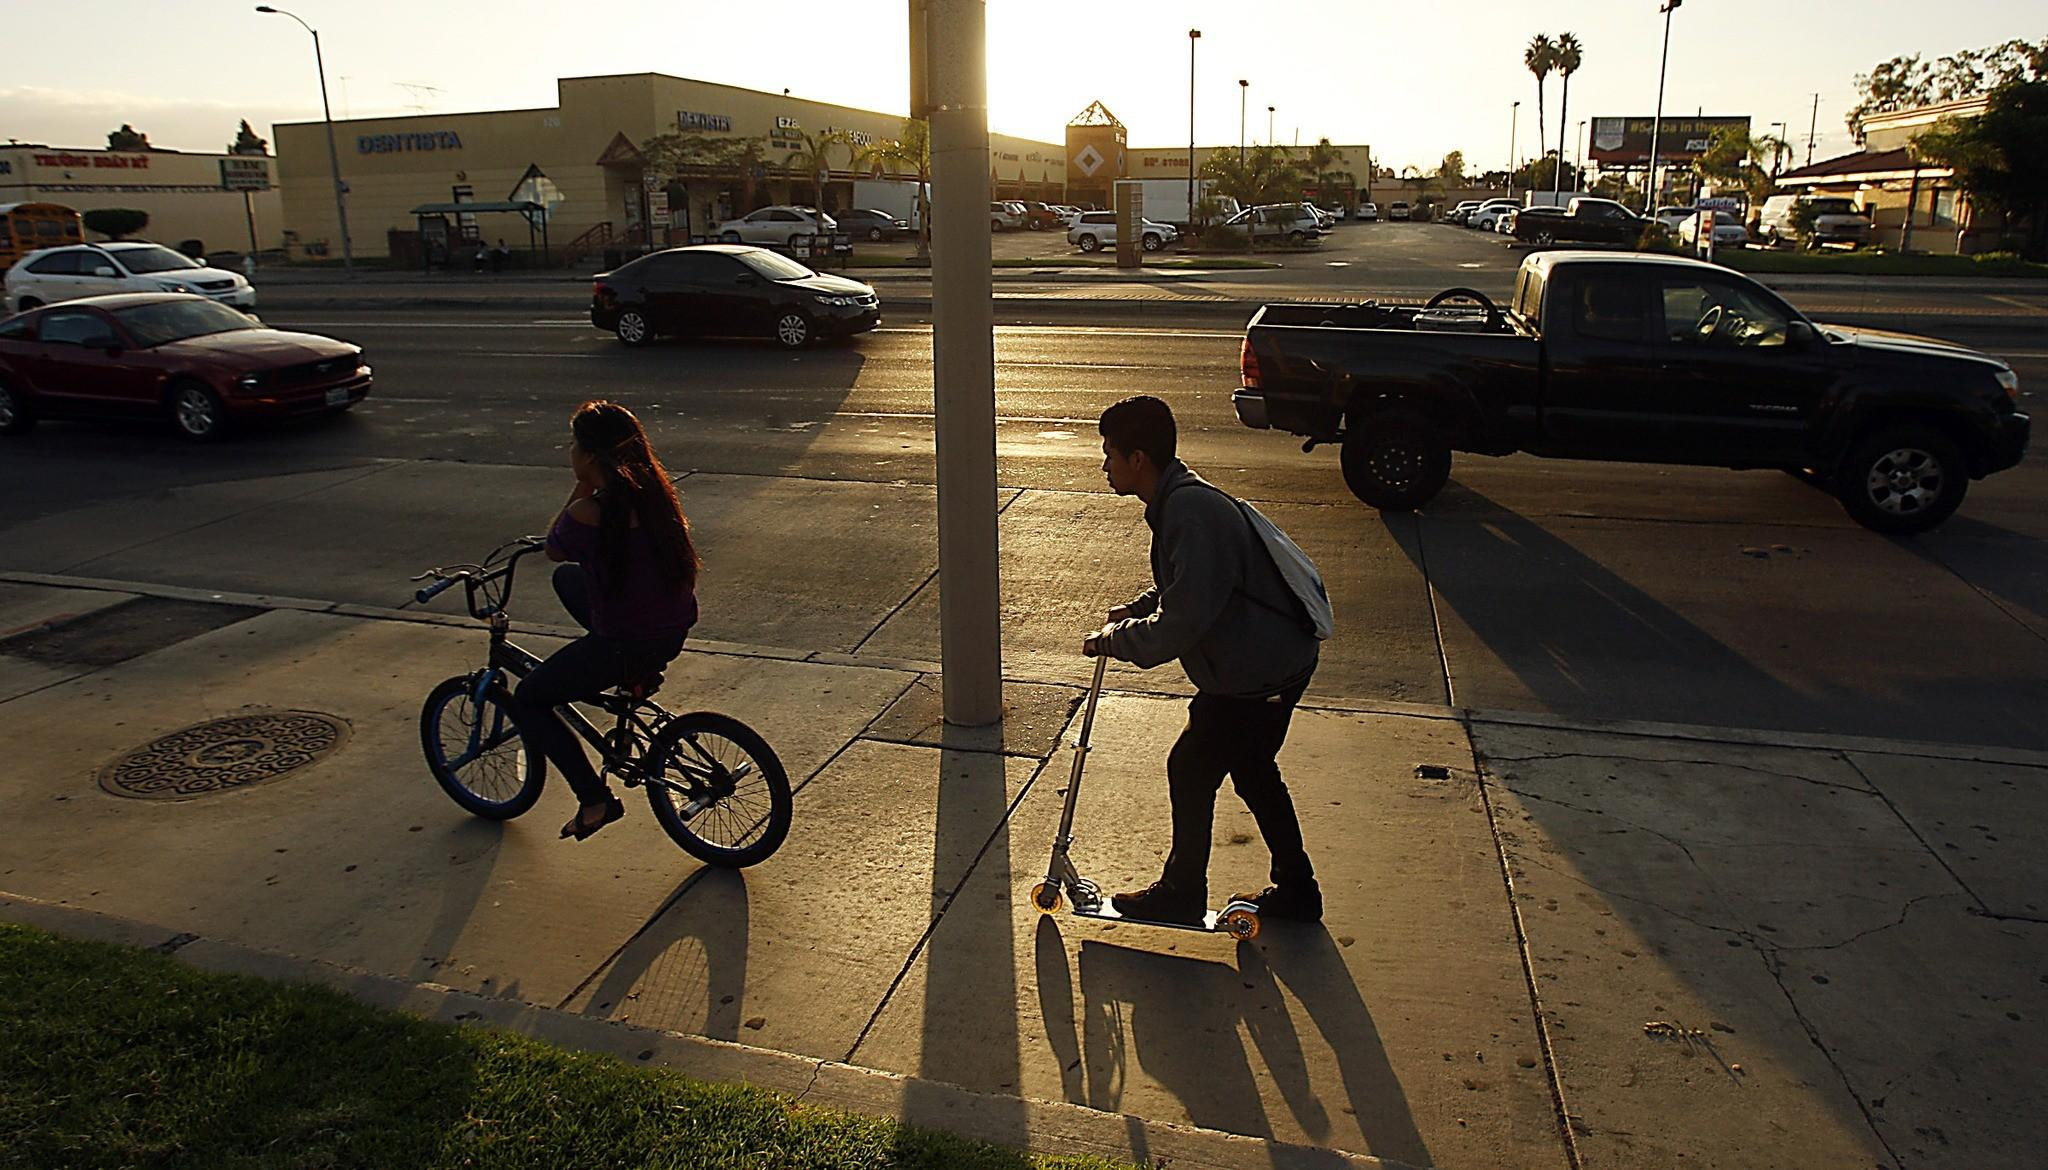 Kids scoot down Harbor Boulevard in Santa Ana as late afternoon traffic rolls along a landscape of strip malls. Despite real estate development, the boulevard has seen little change over the years. There is no equivalent of the light-rail expansion that is r